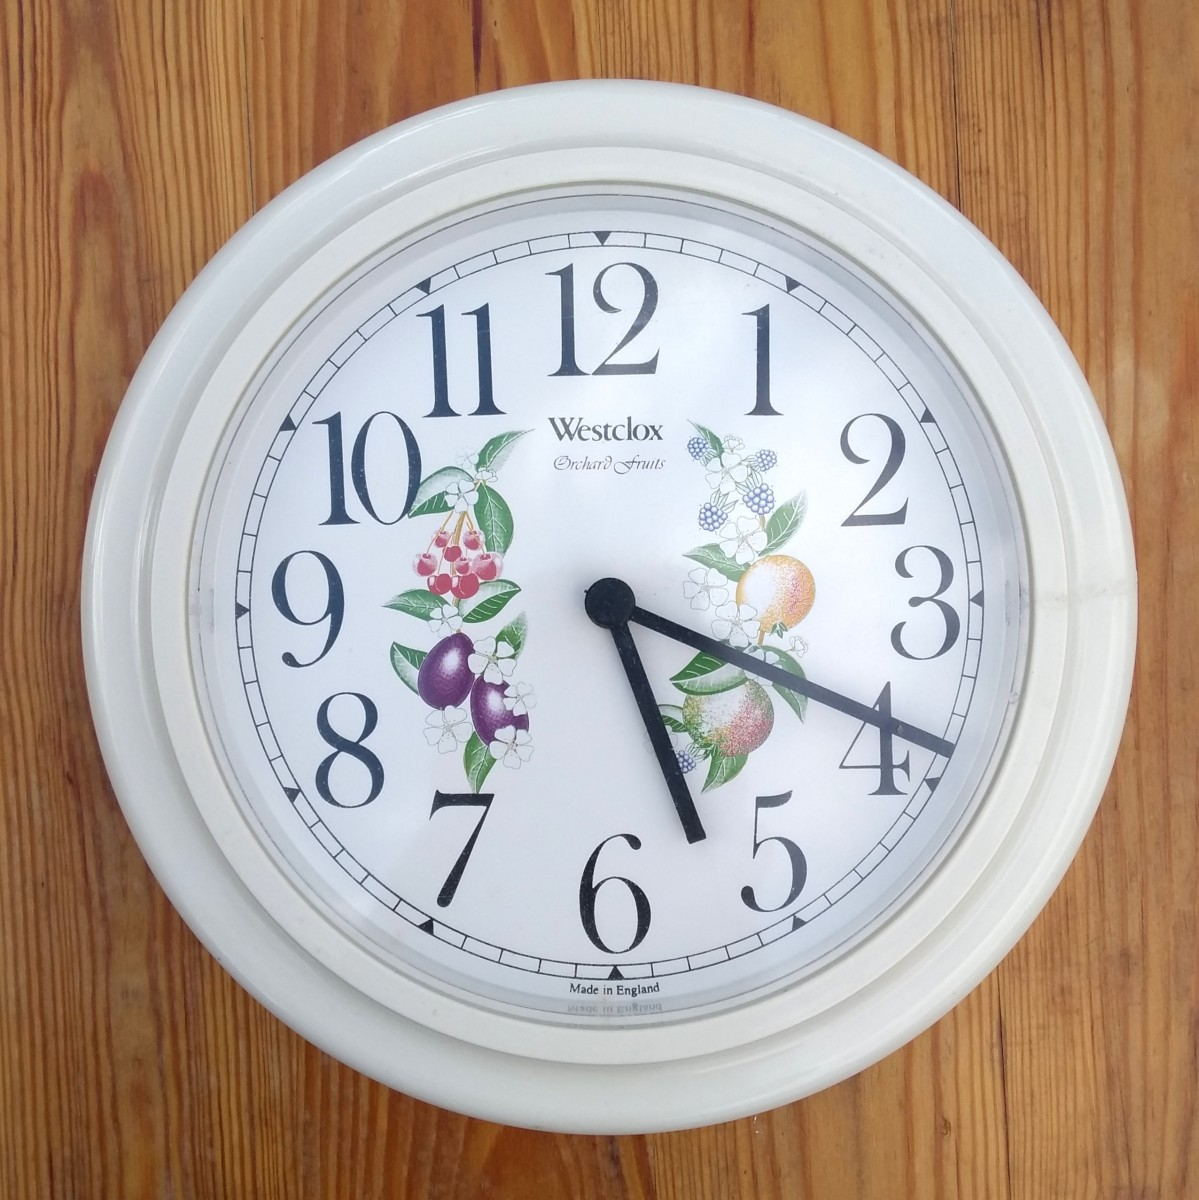 Typical battery quartz electronic wall clock.